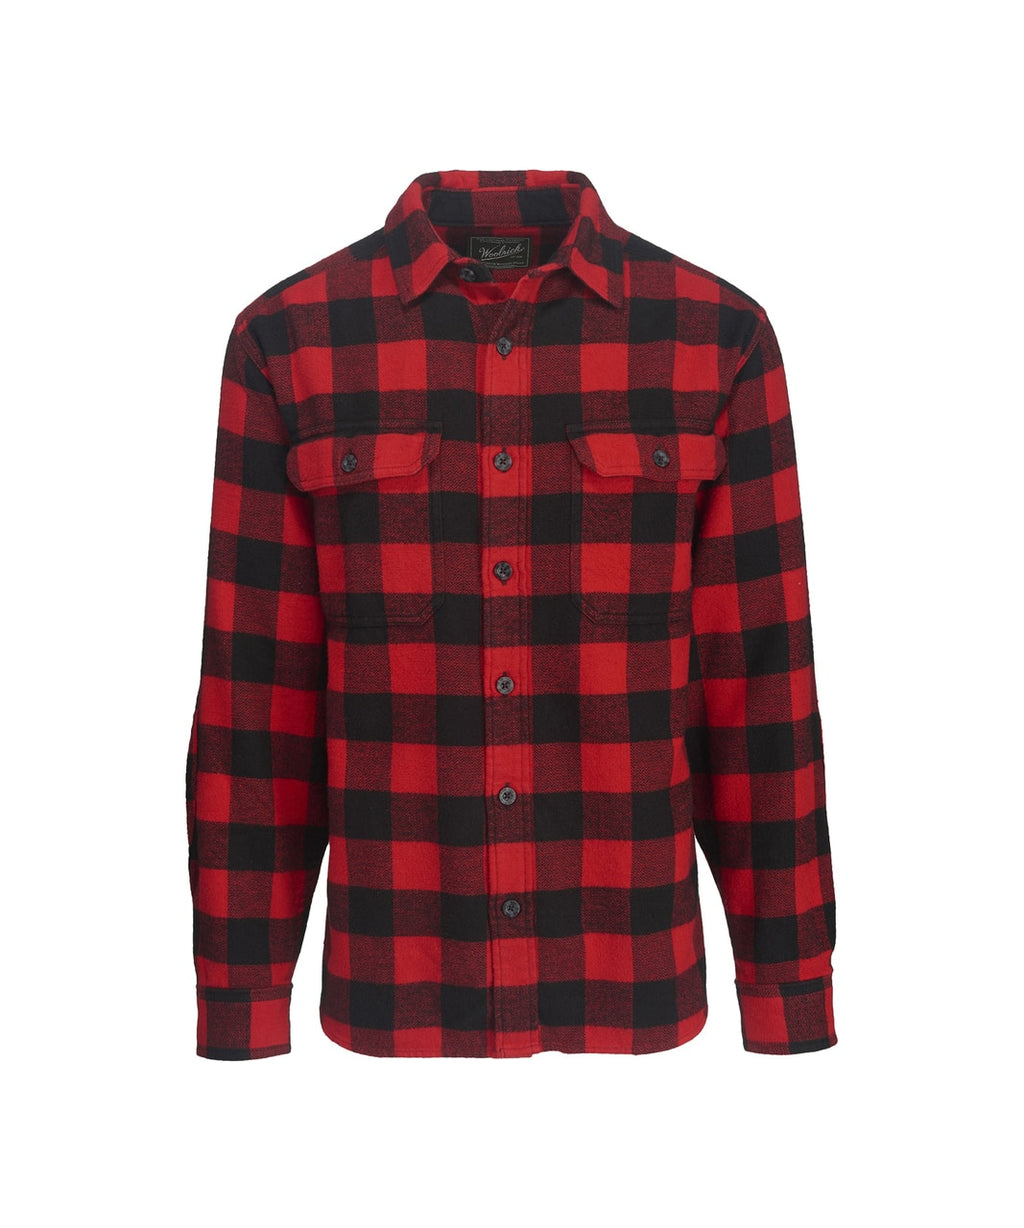 Woolrich - Oxbow Bend - Black/Red - Shirt - Guys